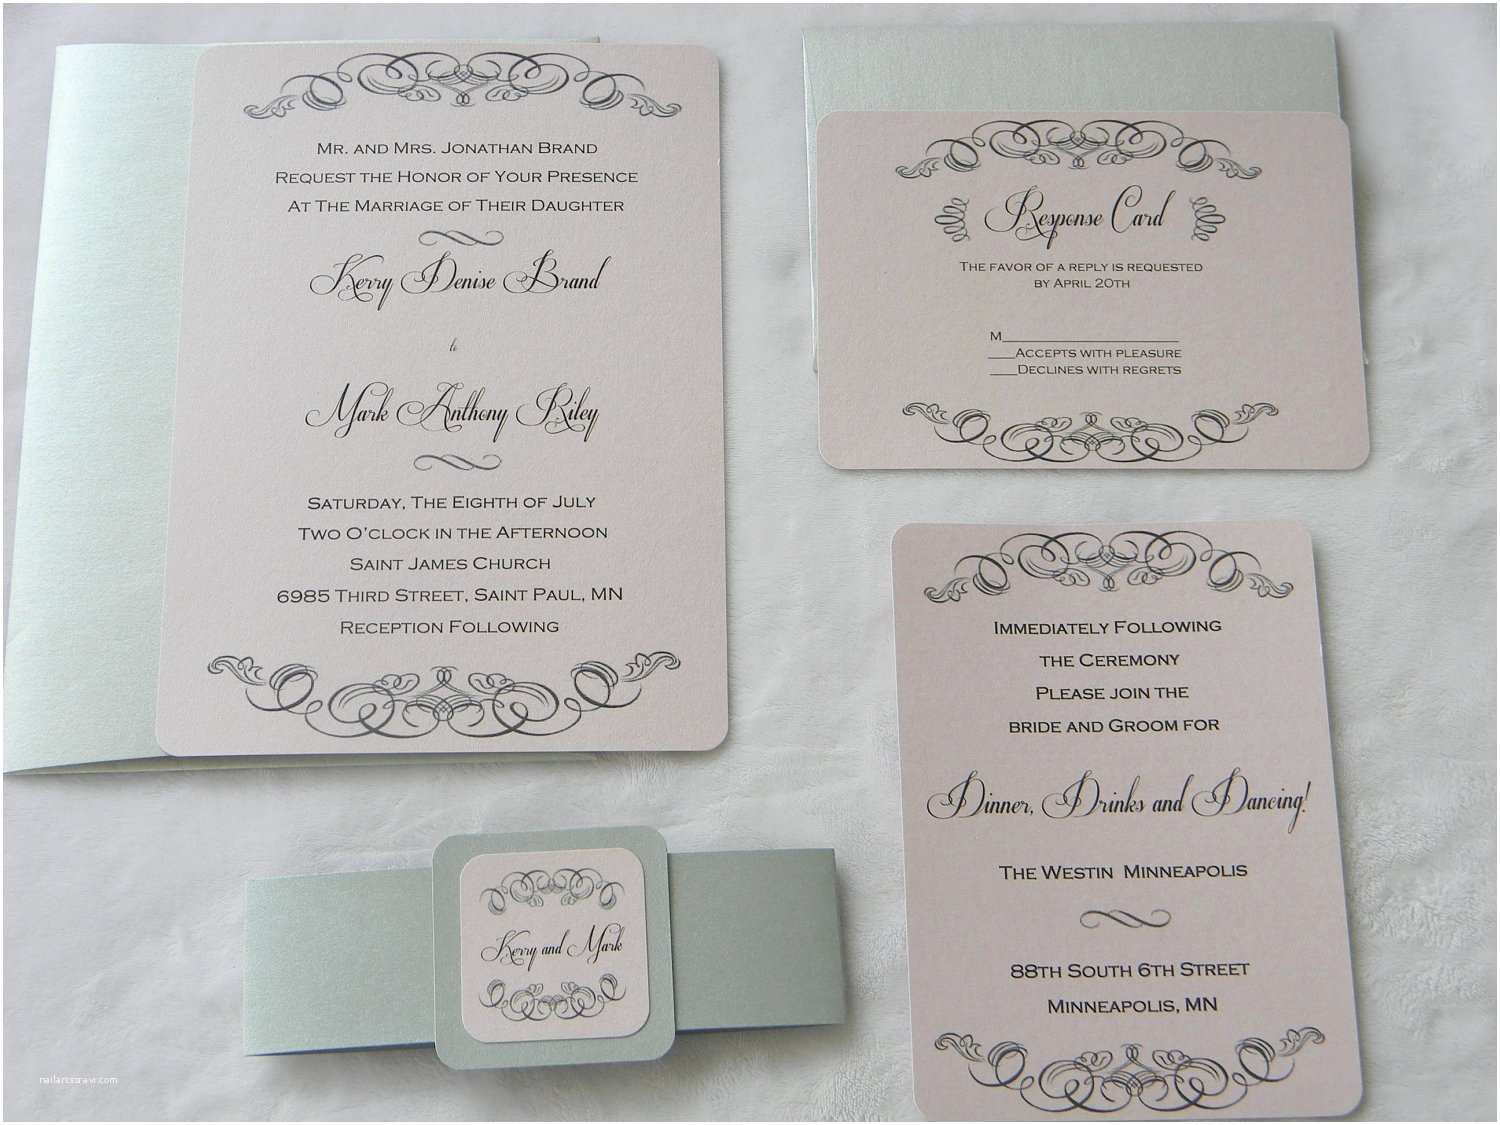 Pink and Grey Wedding Invitations Vintage Design Wedding Invitation Suite Pink and Grey